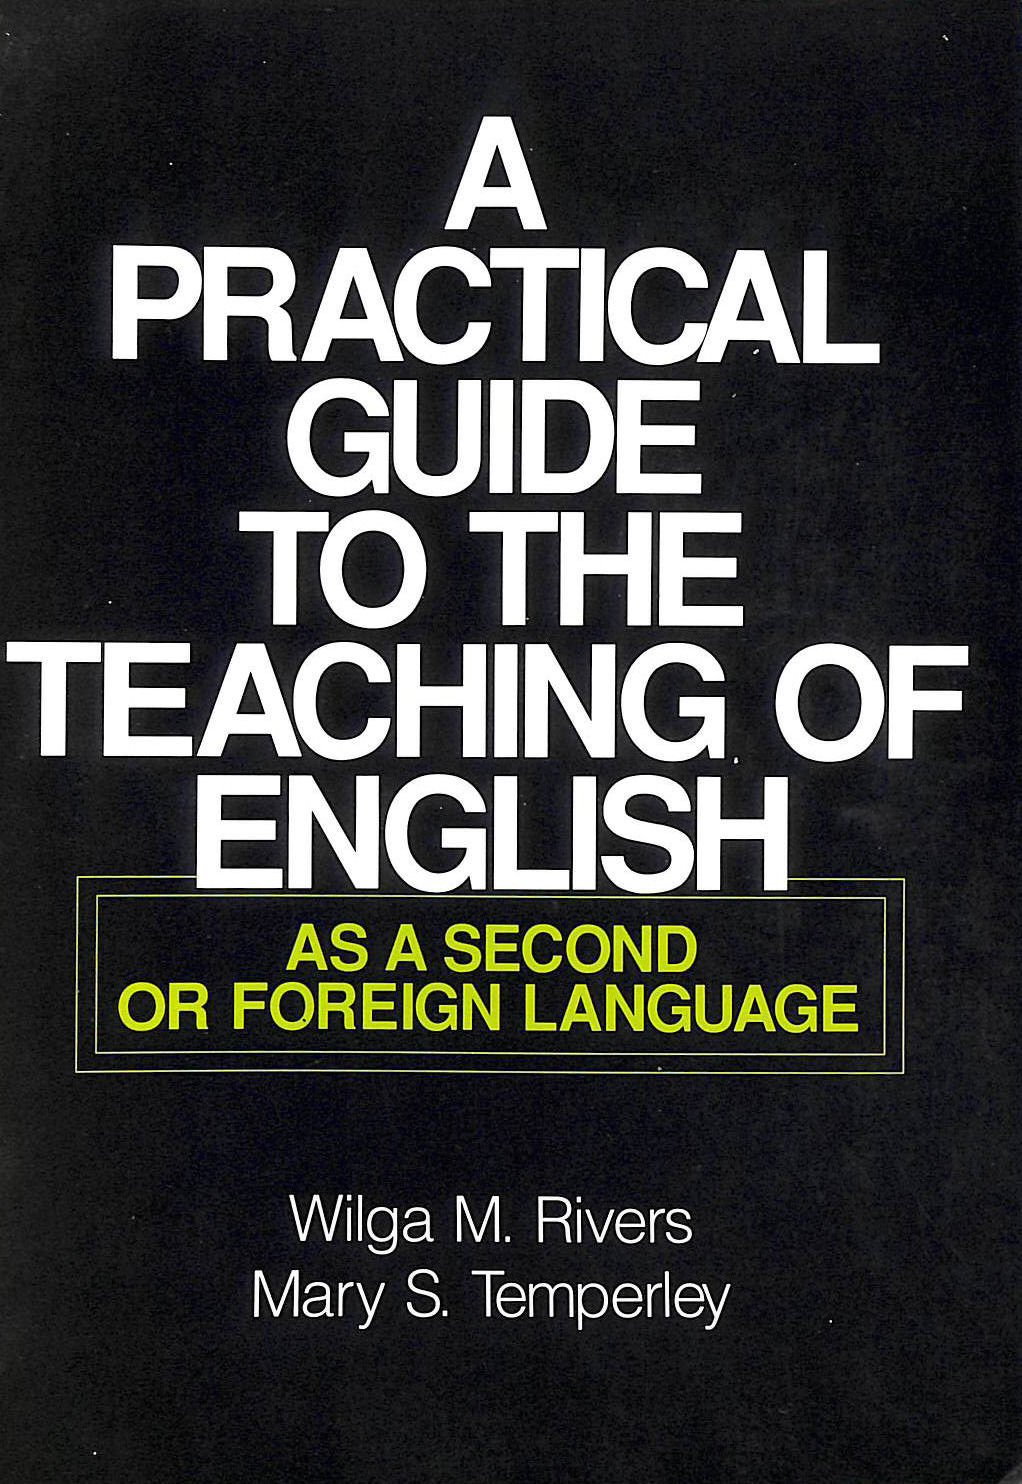 Image for A Practical Guide to the Teaching of English as a Second or Foreign Language